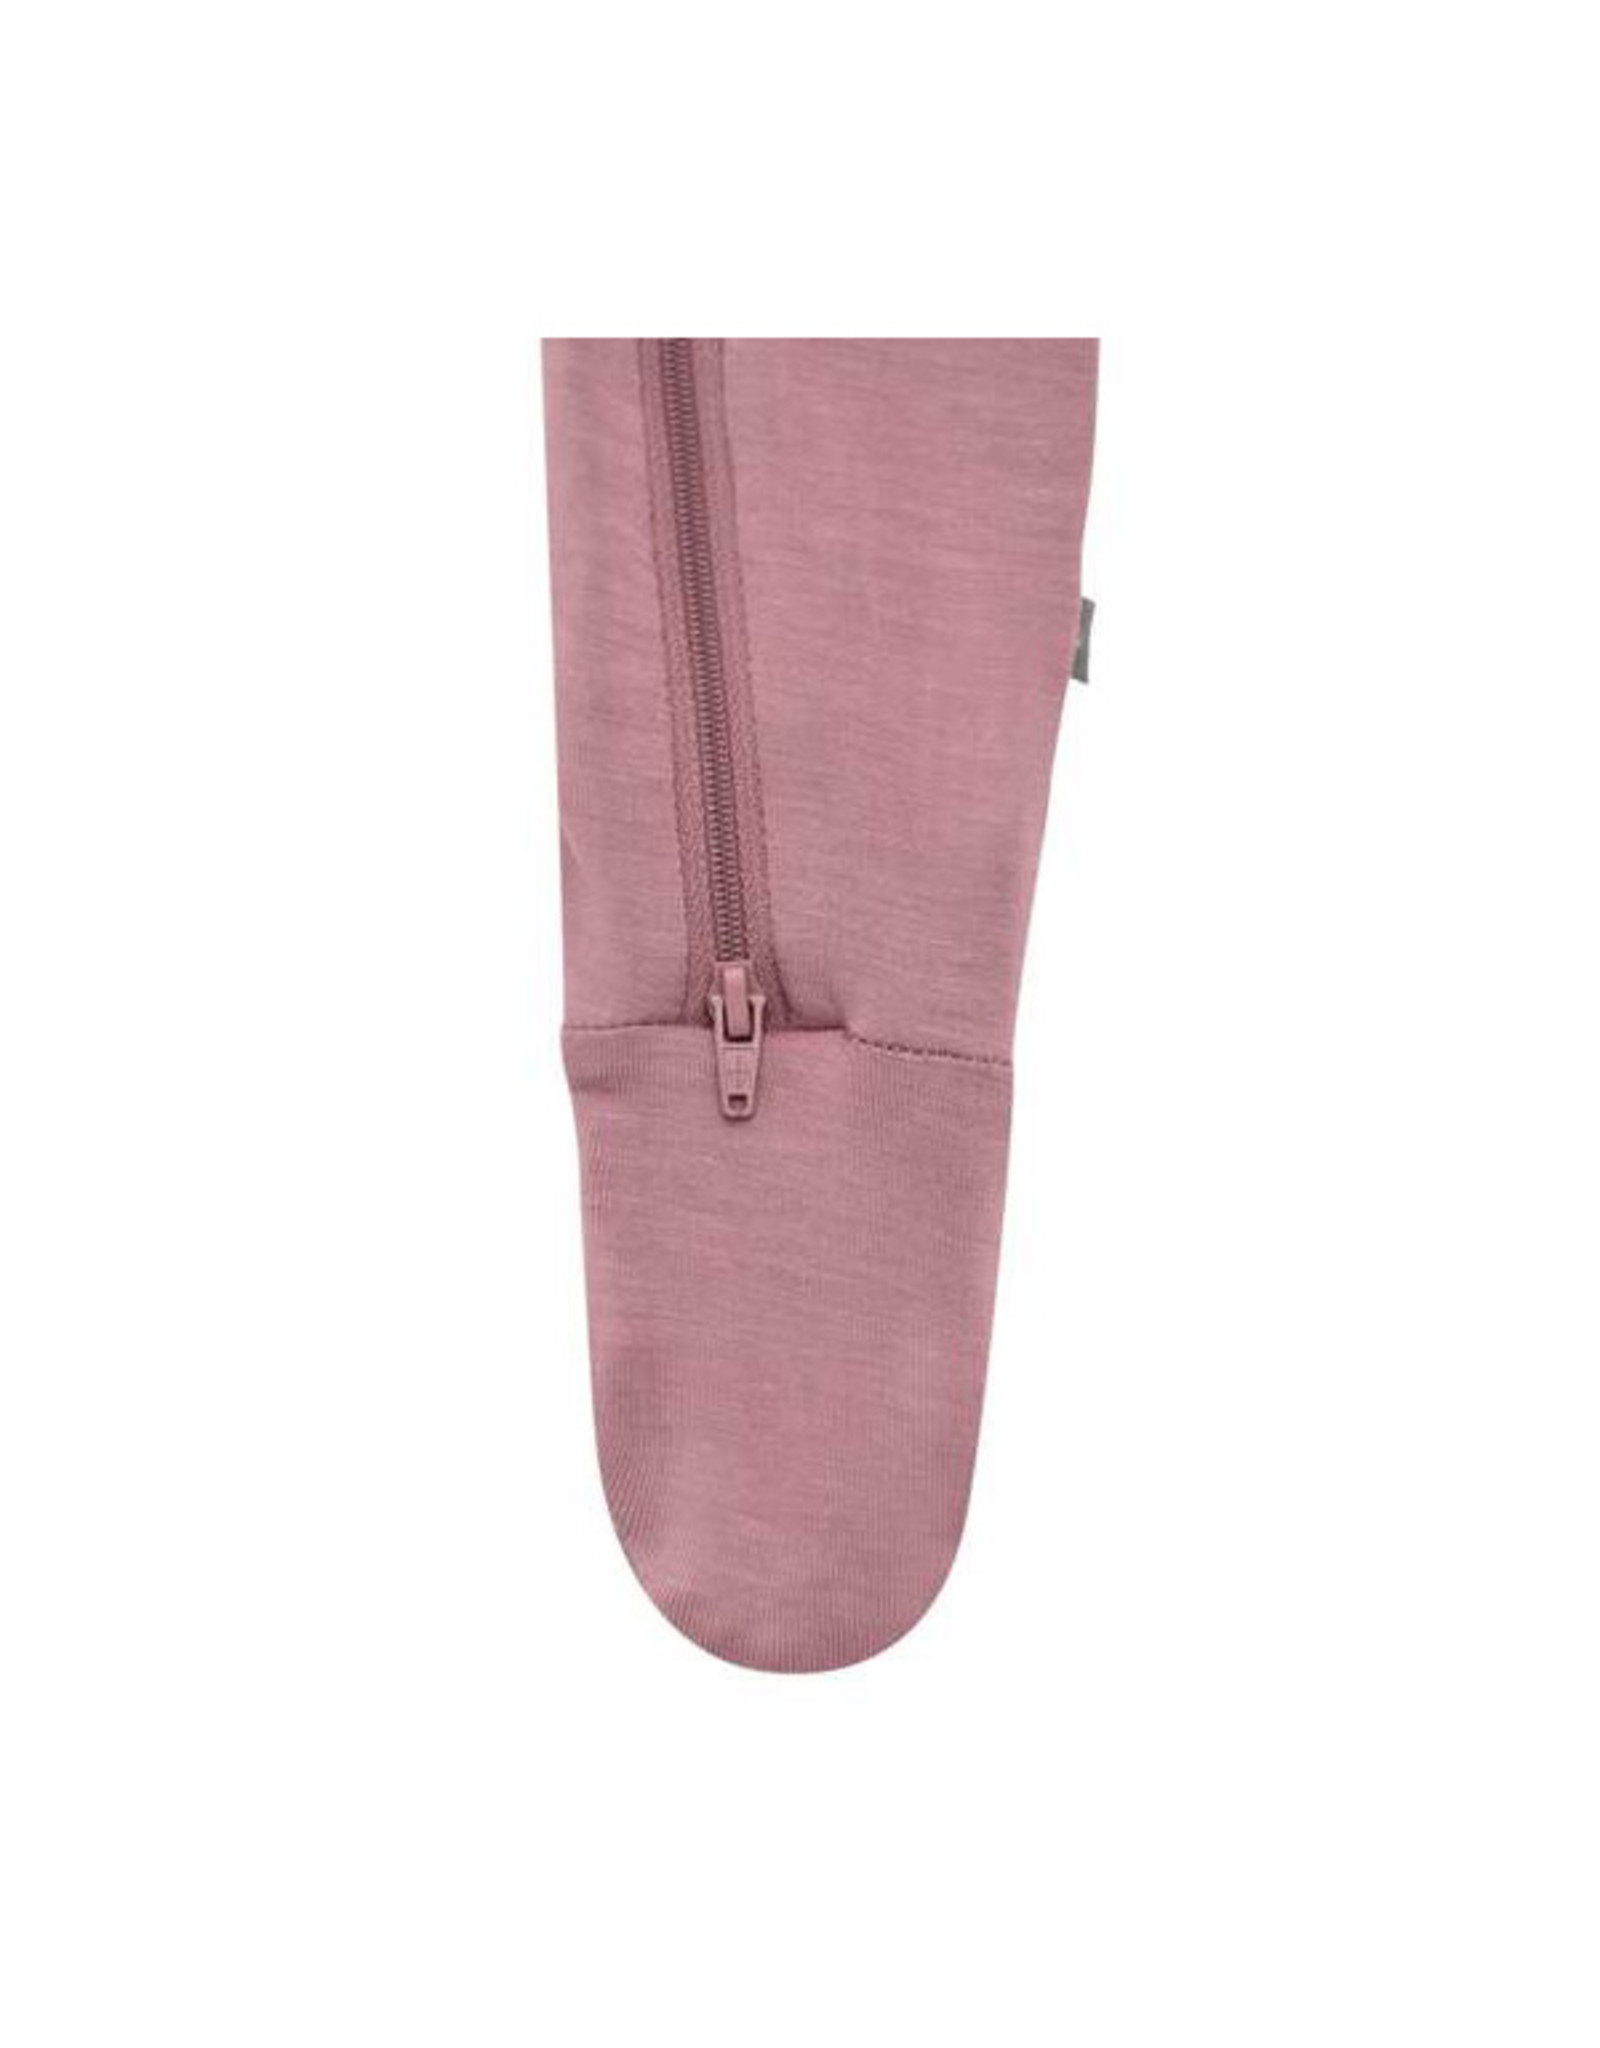 Kyte baby Kyte Baby Zippered Footie in Mulberry